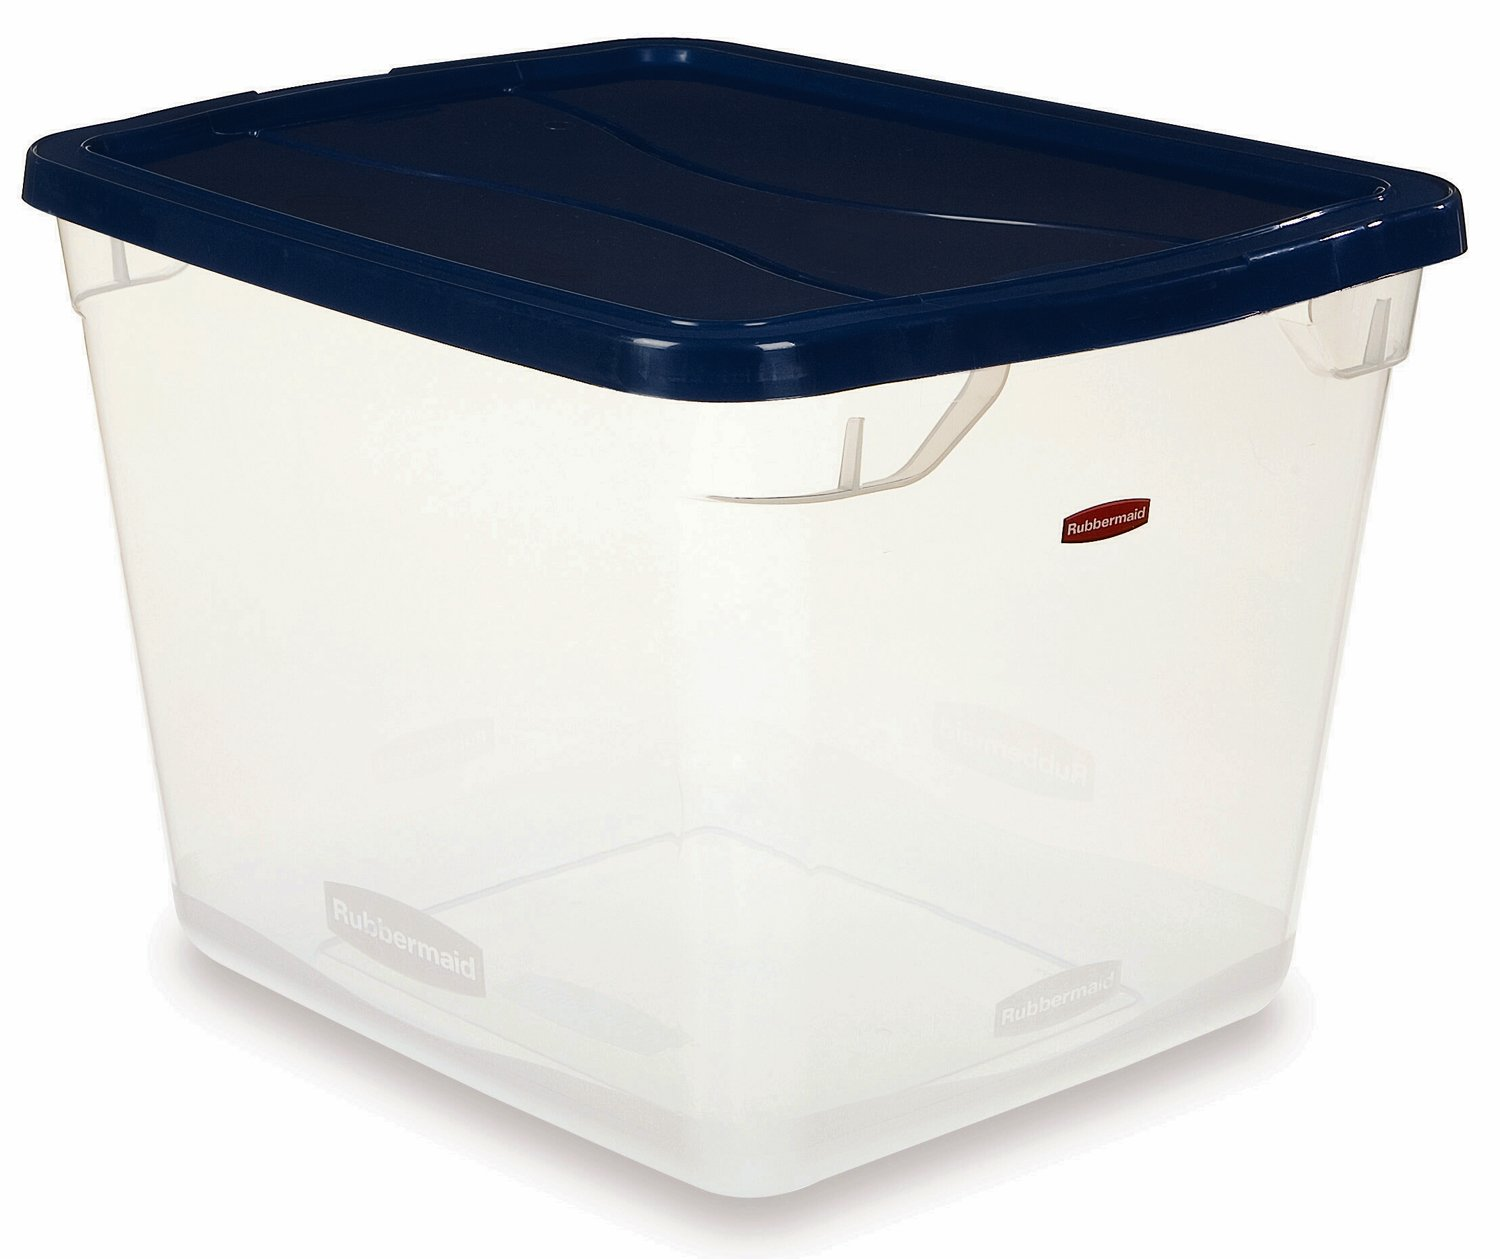 Rubbermaid INC 3Q2700CLRCB Clever Store Storage Container 30 Qt. (Pack of 8) by Rubbermaid